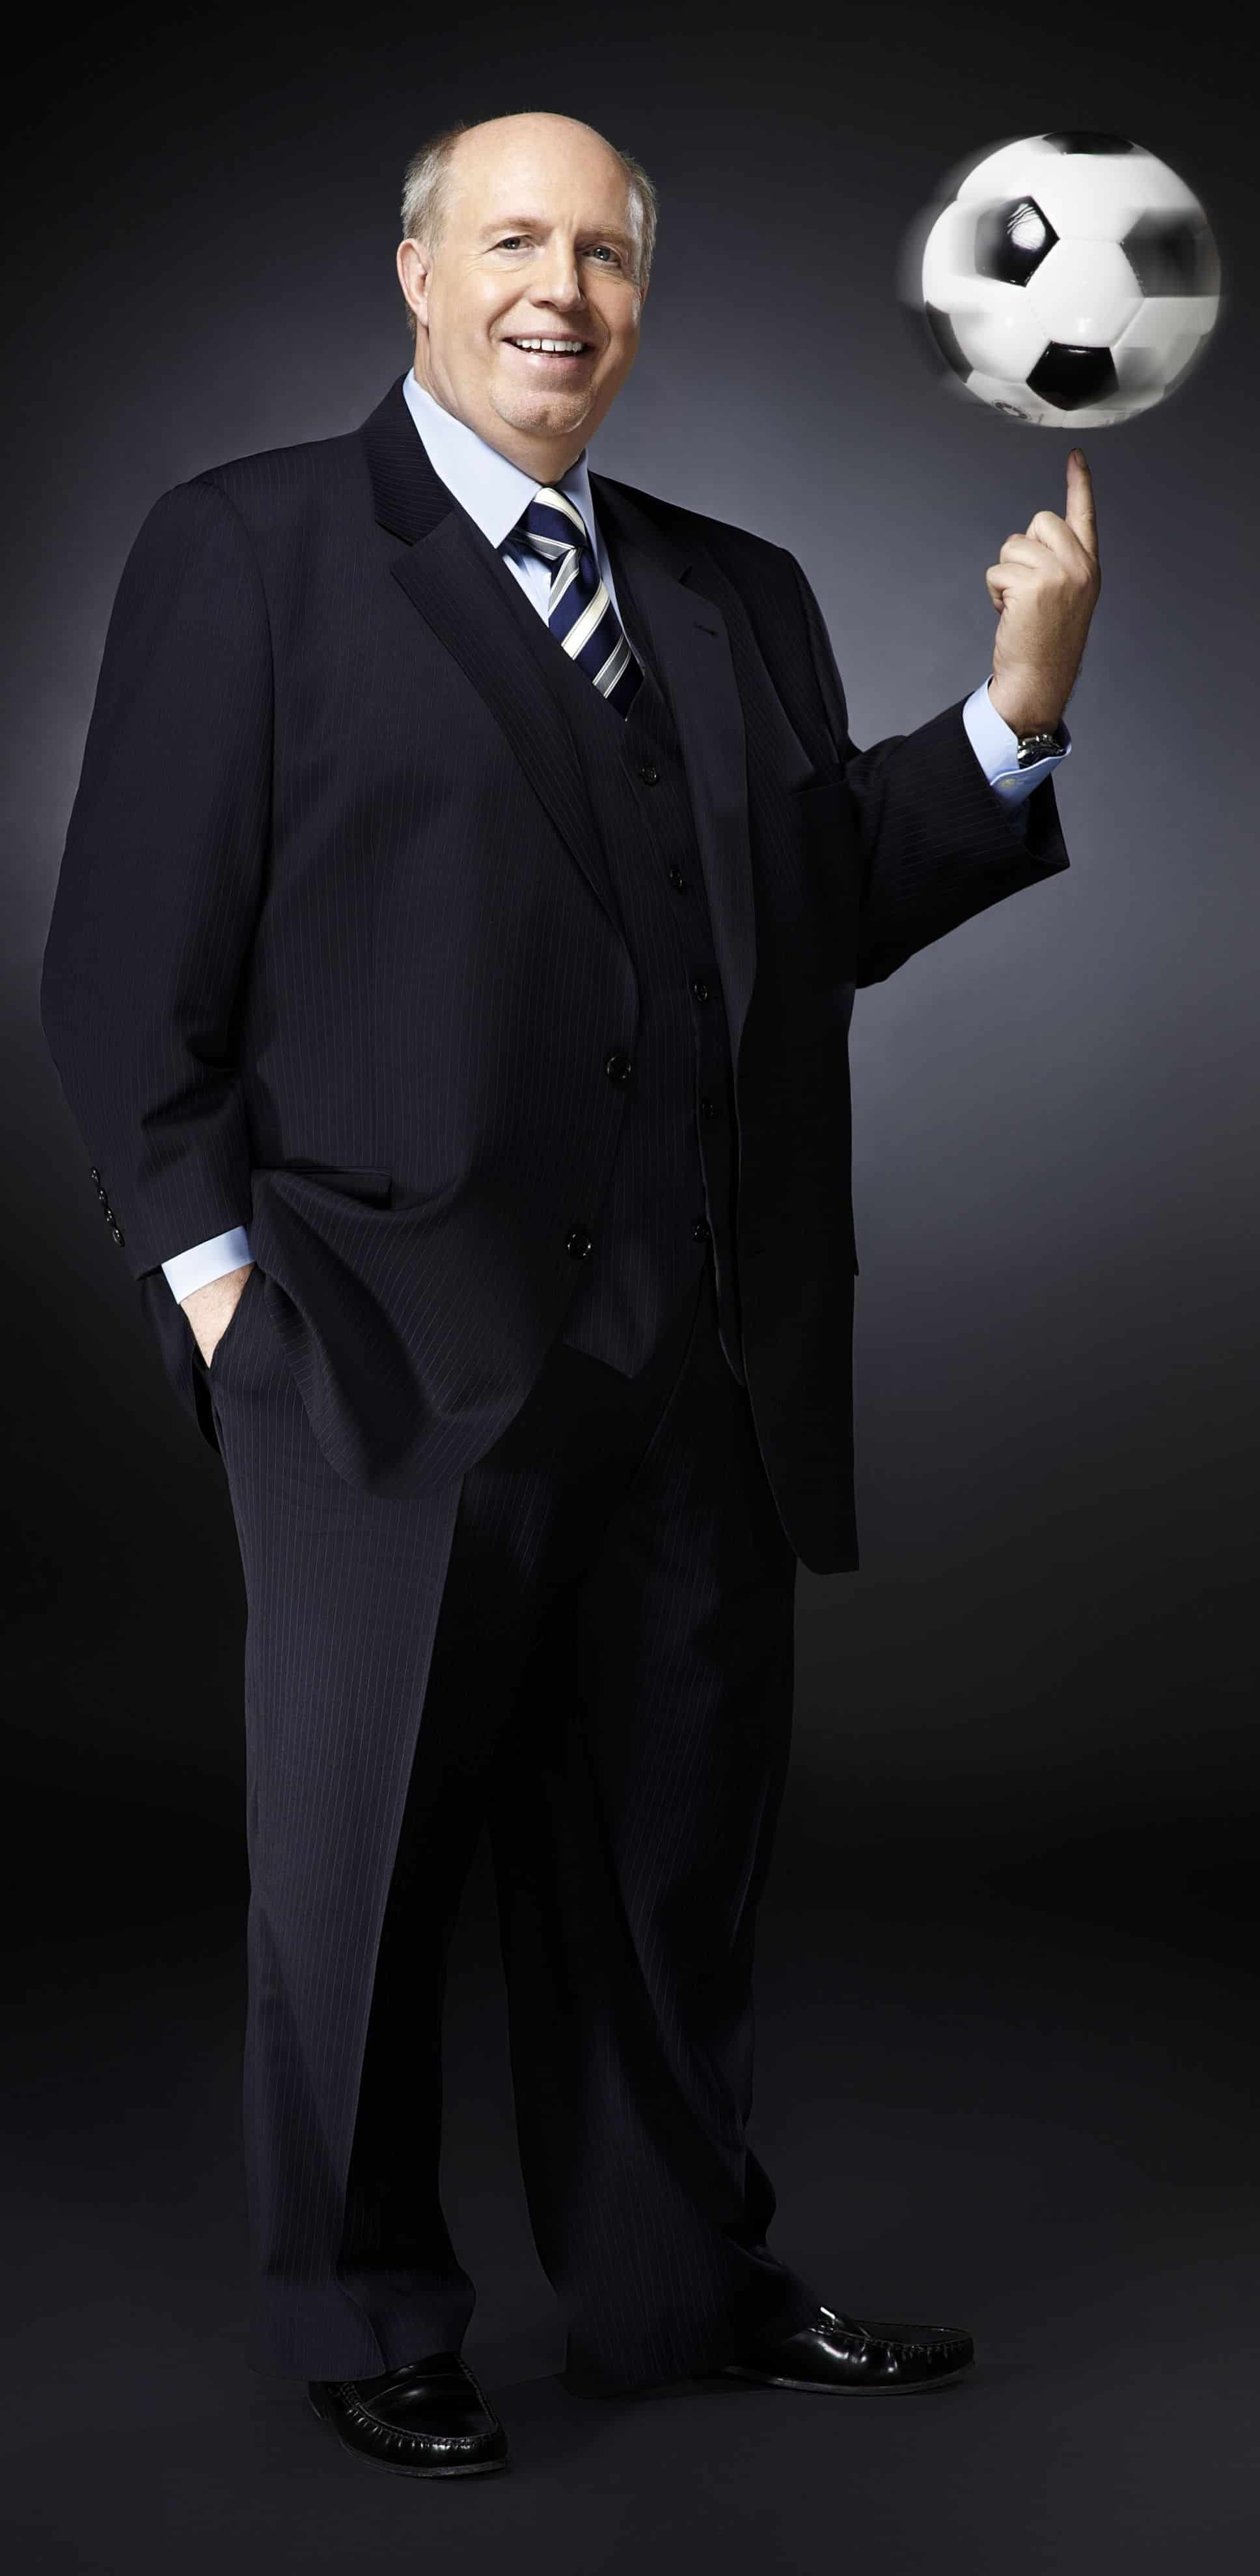 Suits For Big & Tall Men And How To Wear Them Elegantly